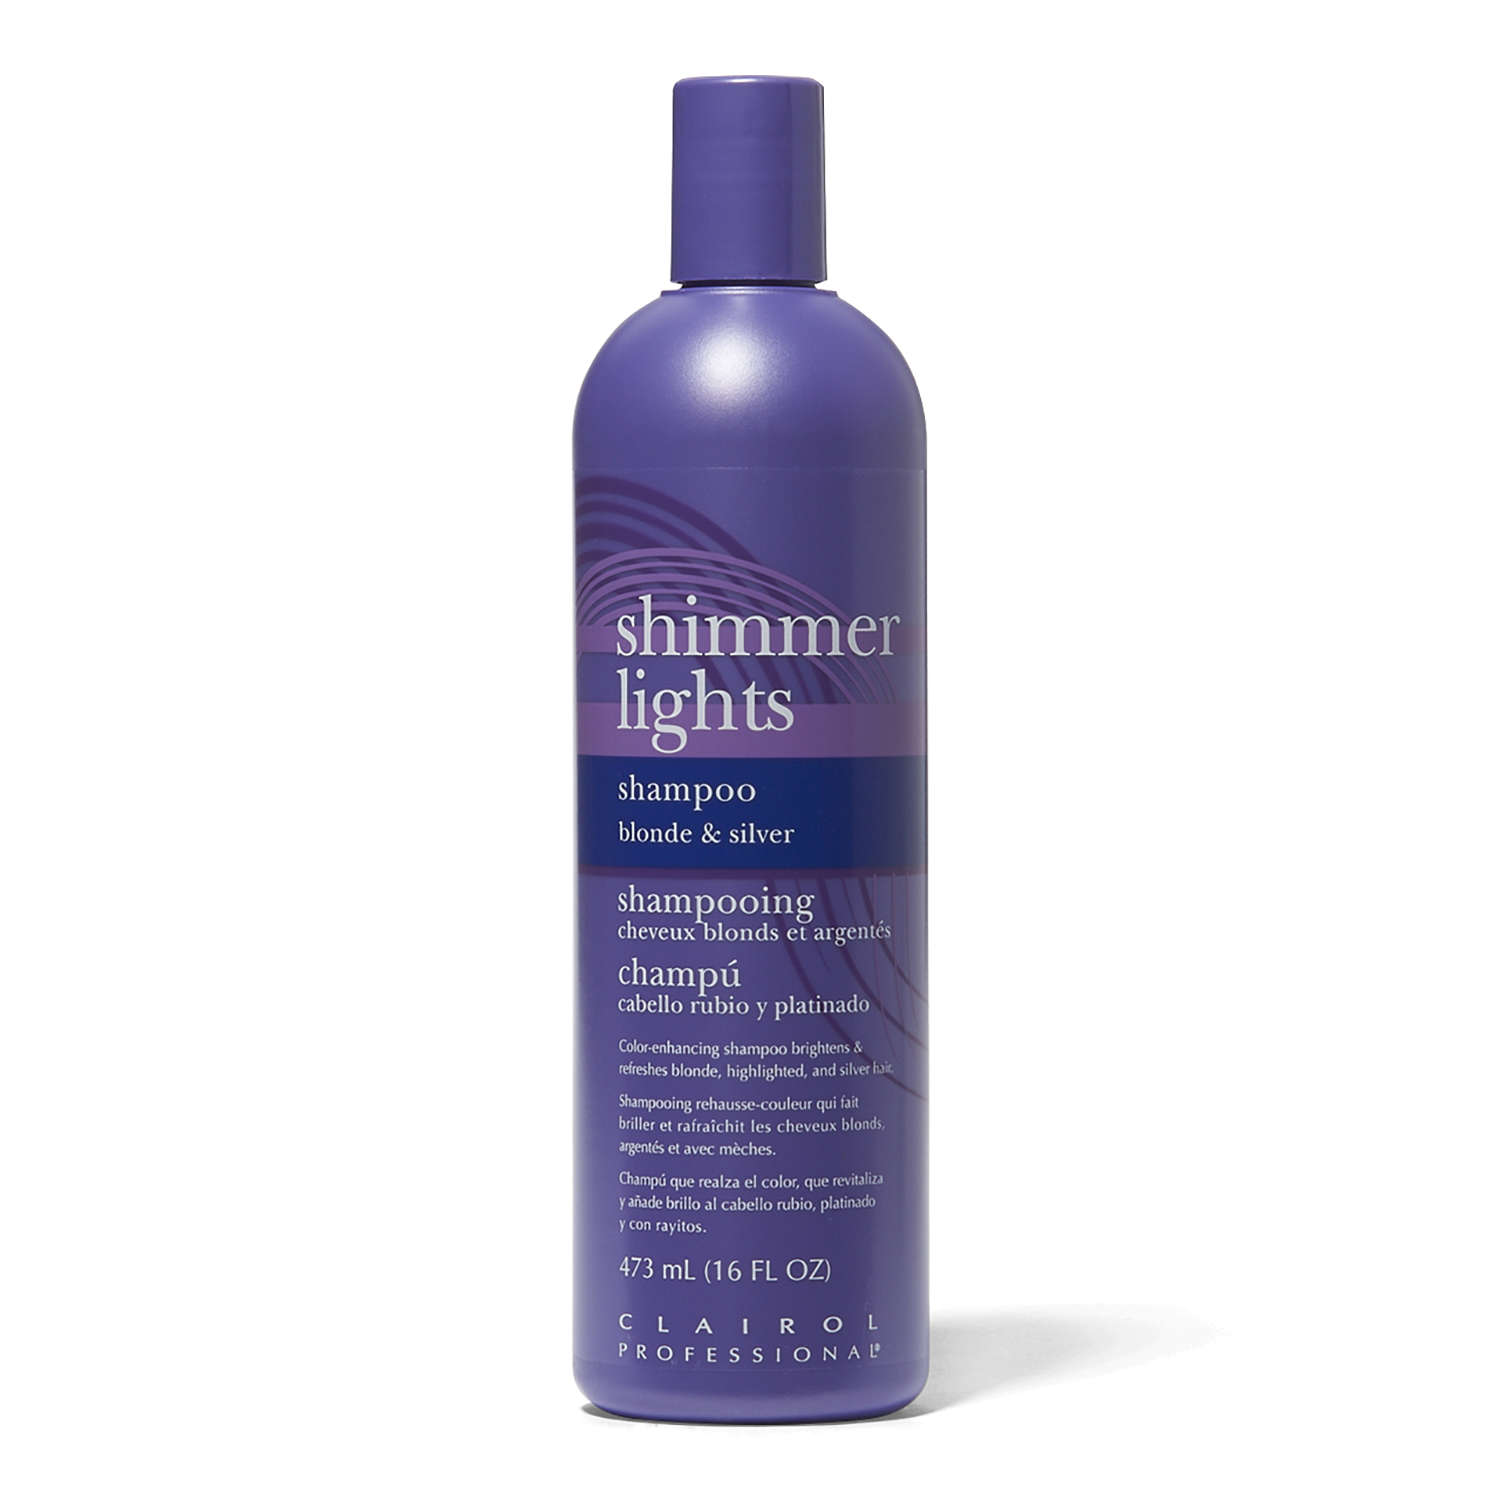 Clairol Shimmer Lights Original Conditioning Shampoo For